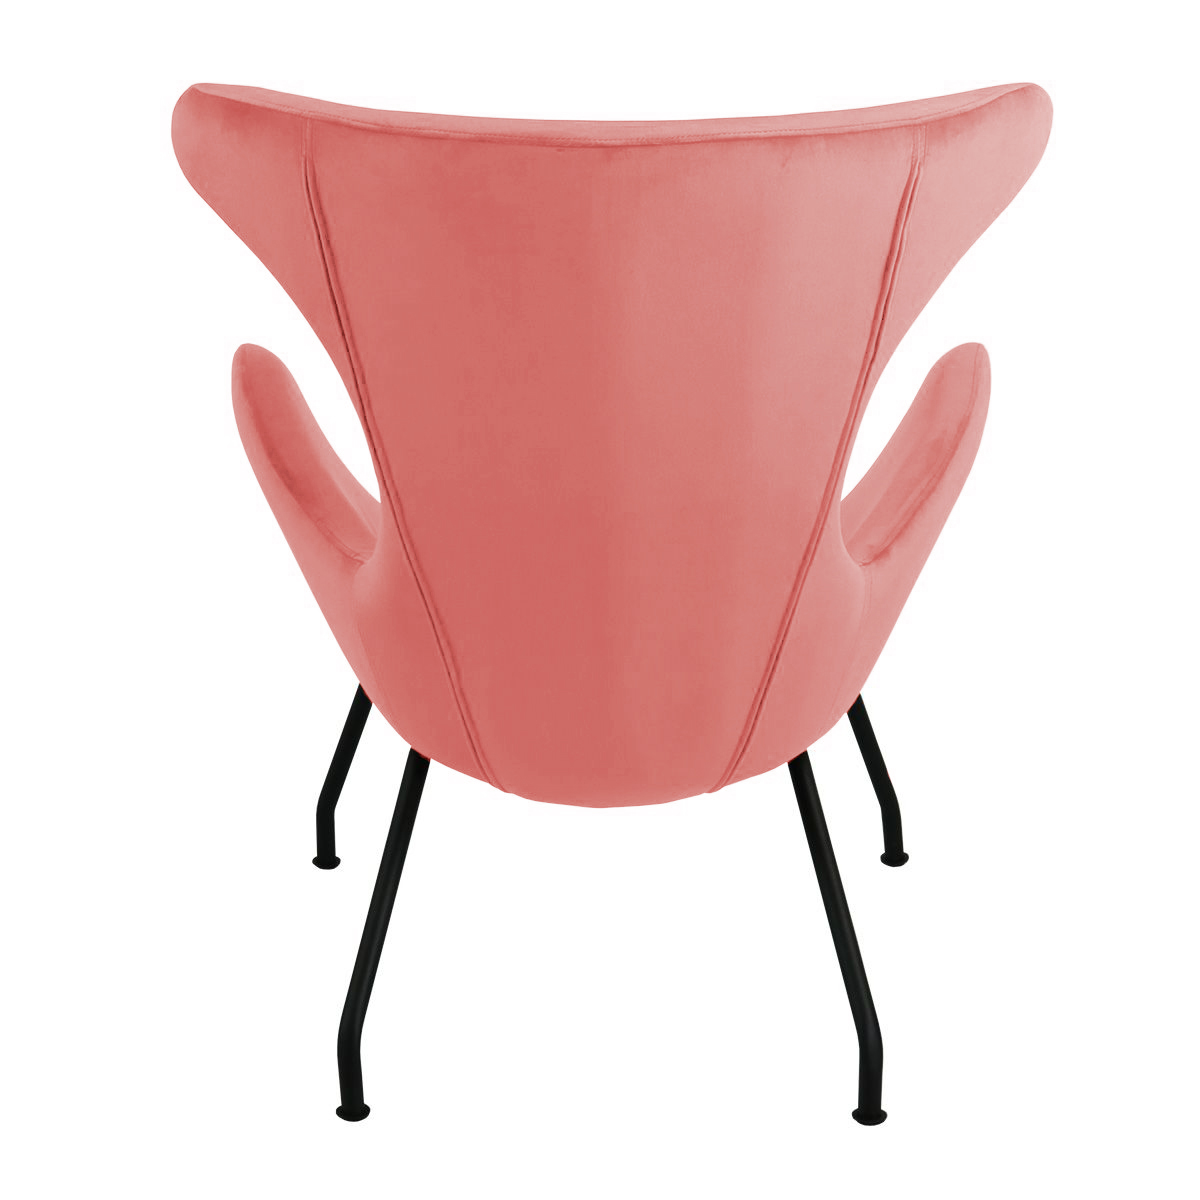 Fauteuil Cup Rood.Kick Fauteuil Billy Roze